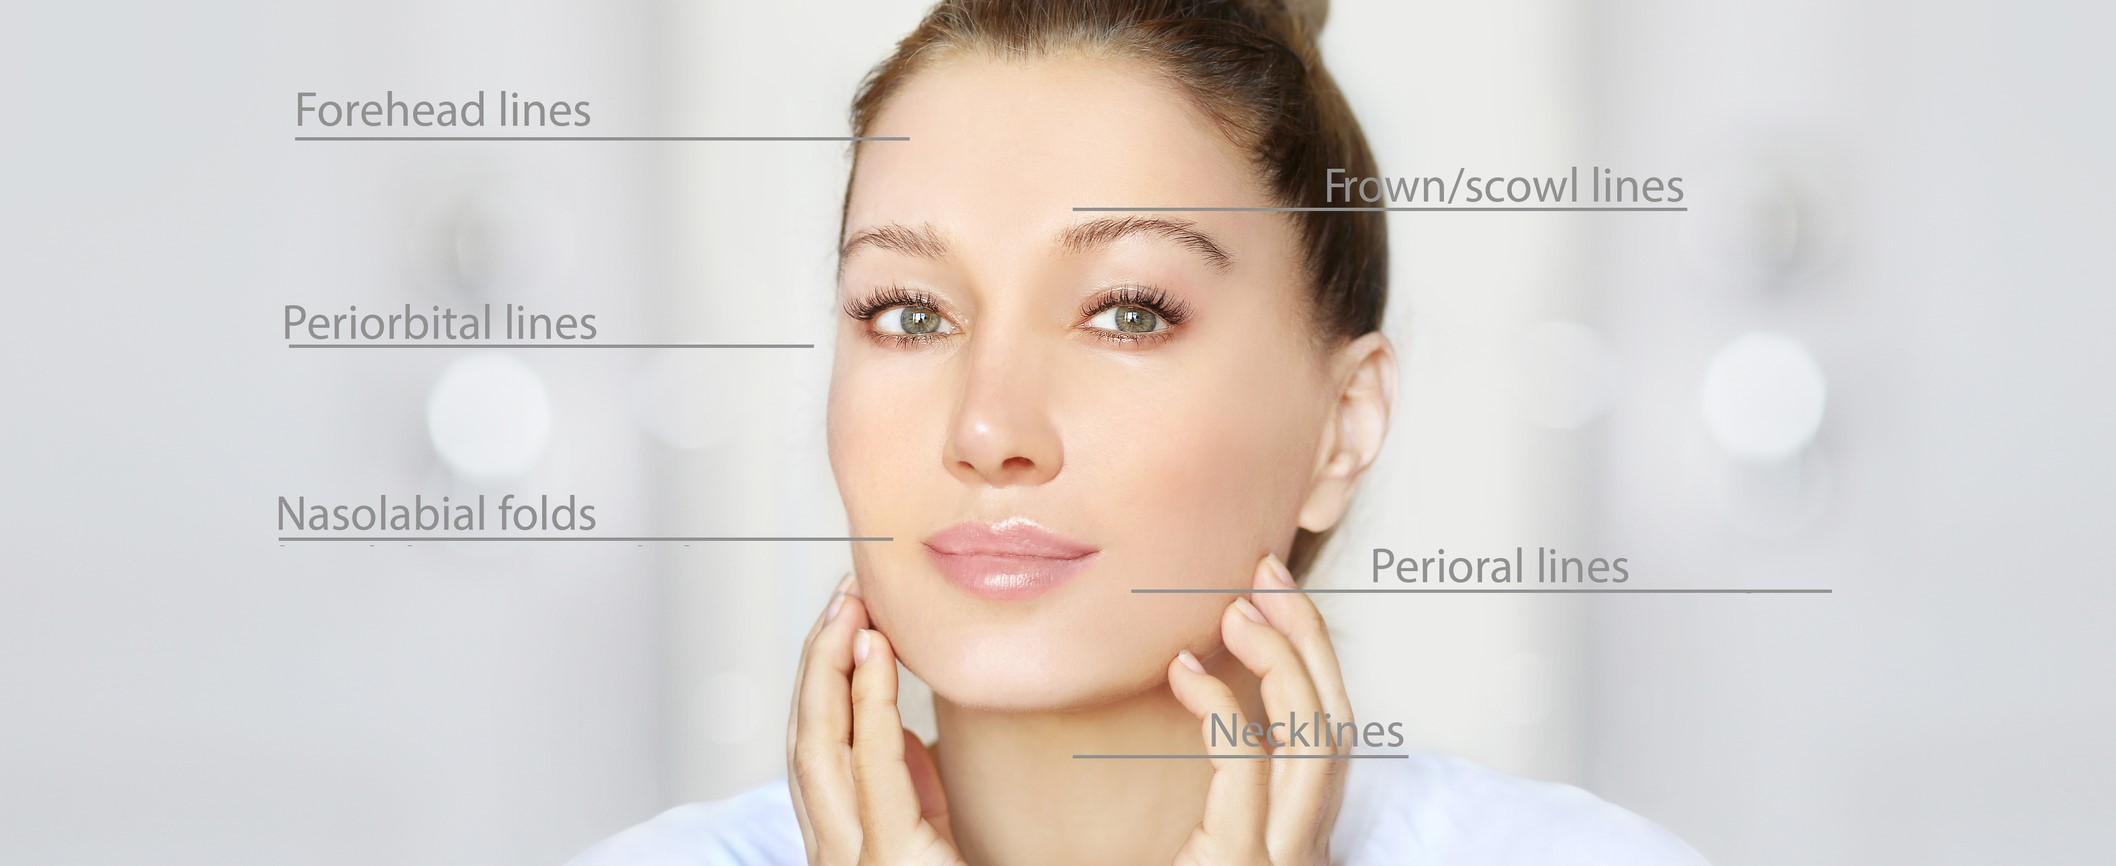 what areas I should address with Botox?